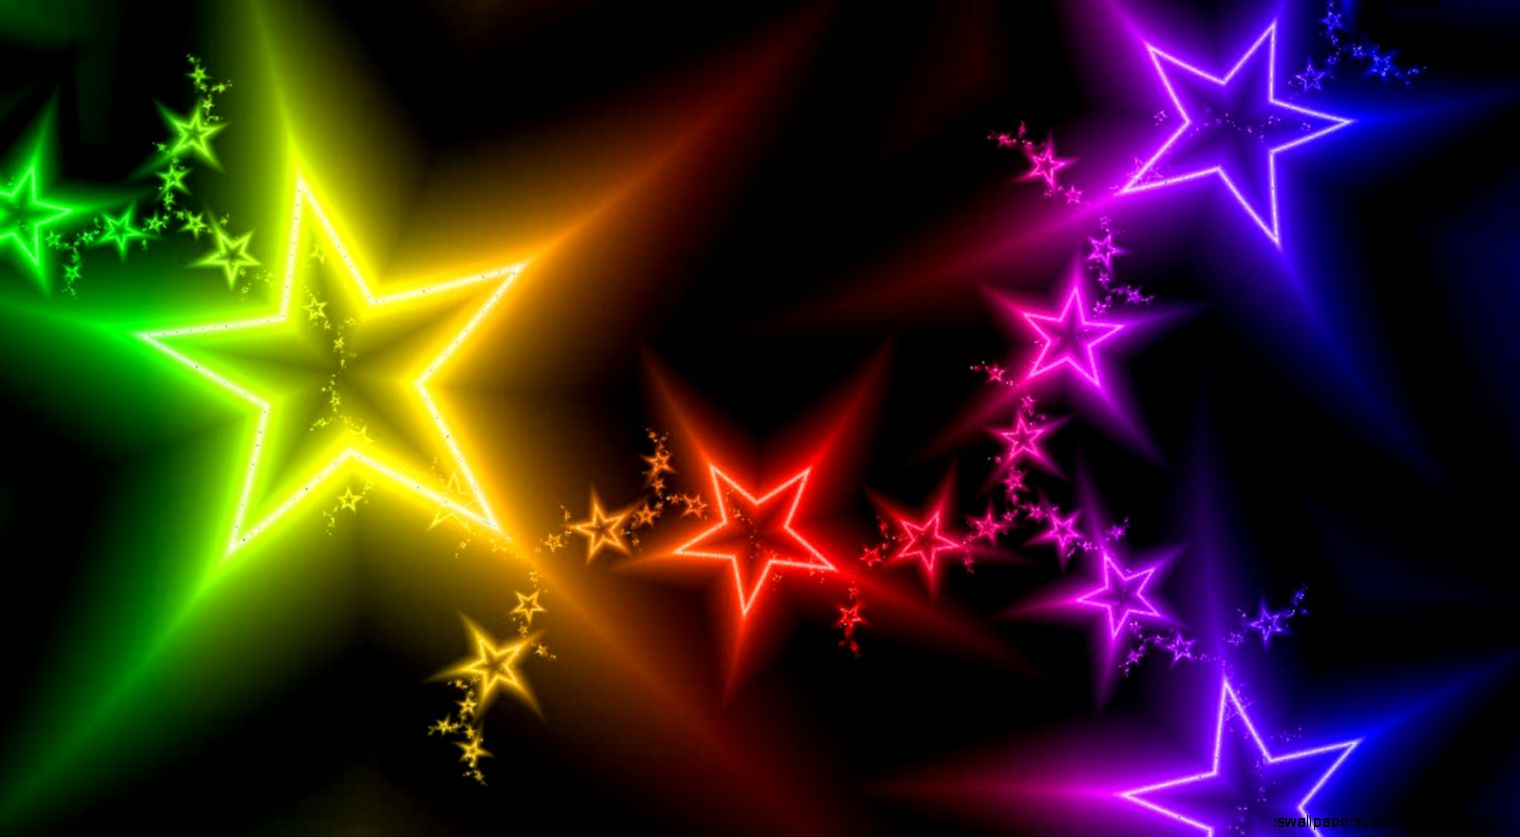 Animated Backgrounds Of Star | Wallpapers Collection - photo#17